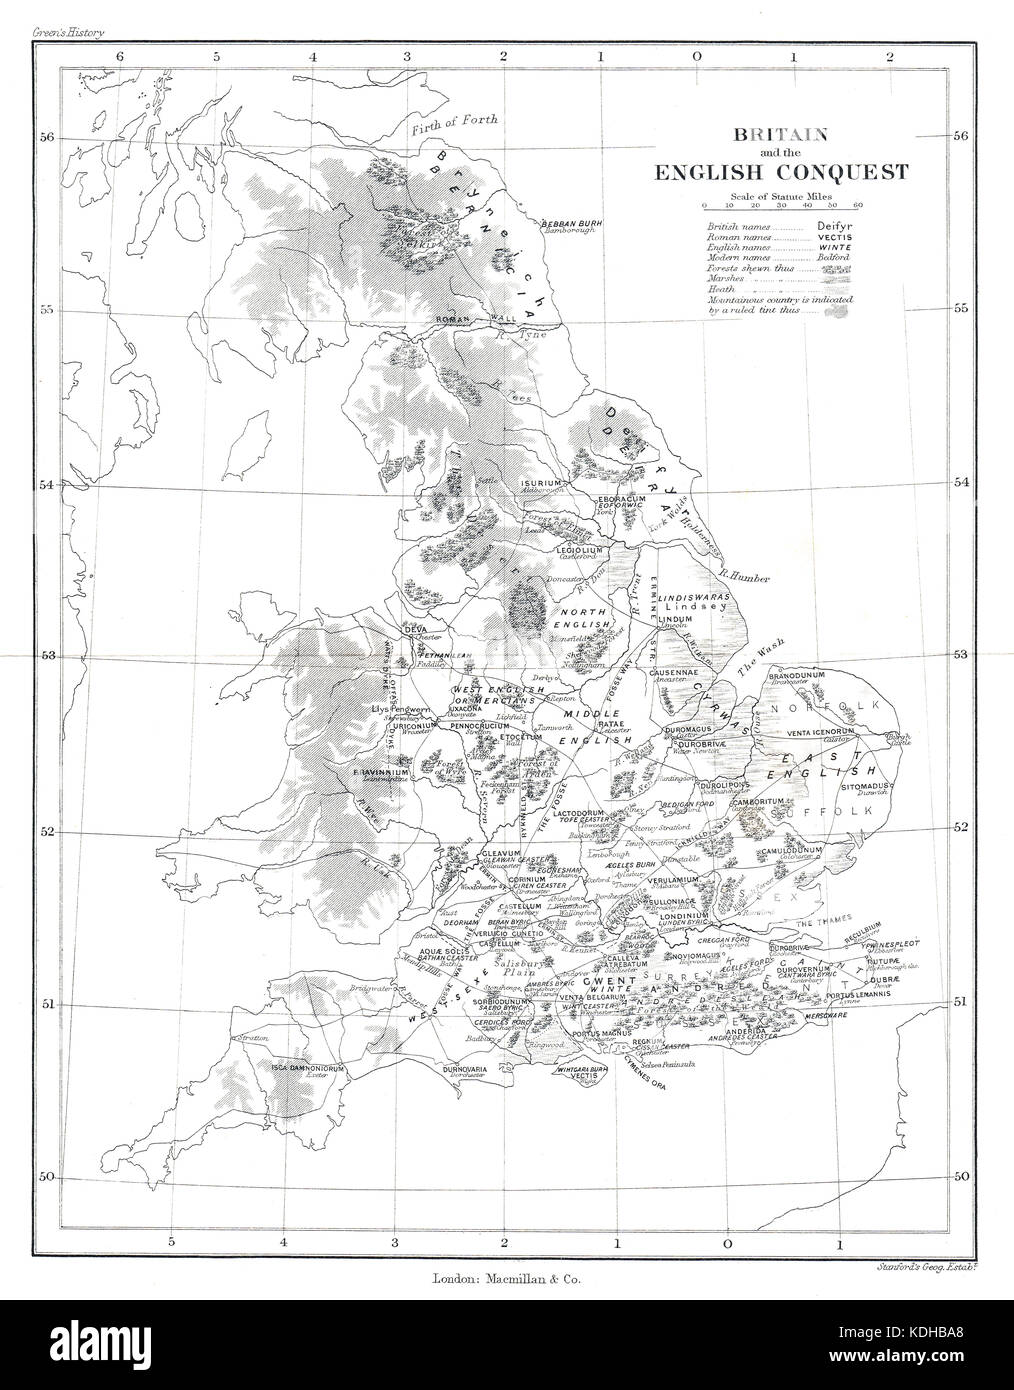 Map of Britain & the English Conquest.  Showing the changing map of the country after the departure of the Romans - Stock Image